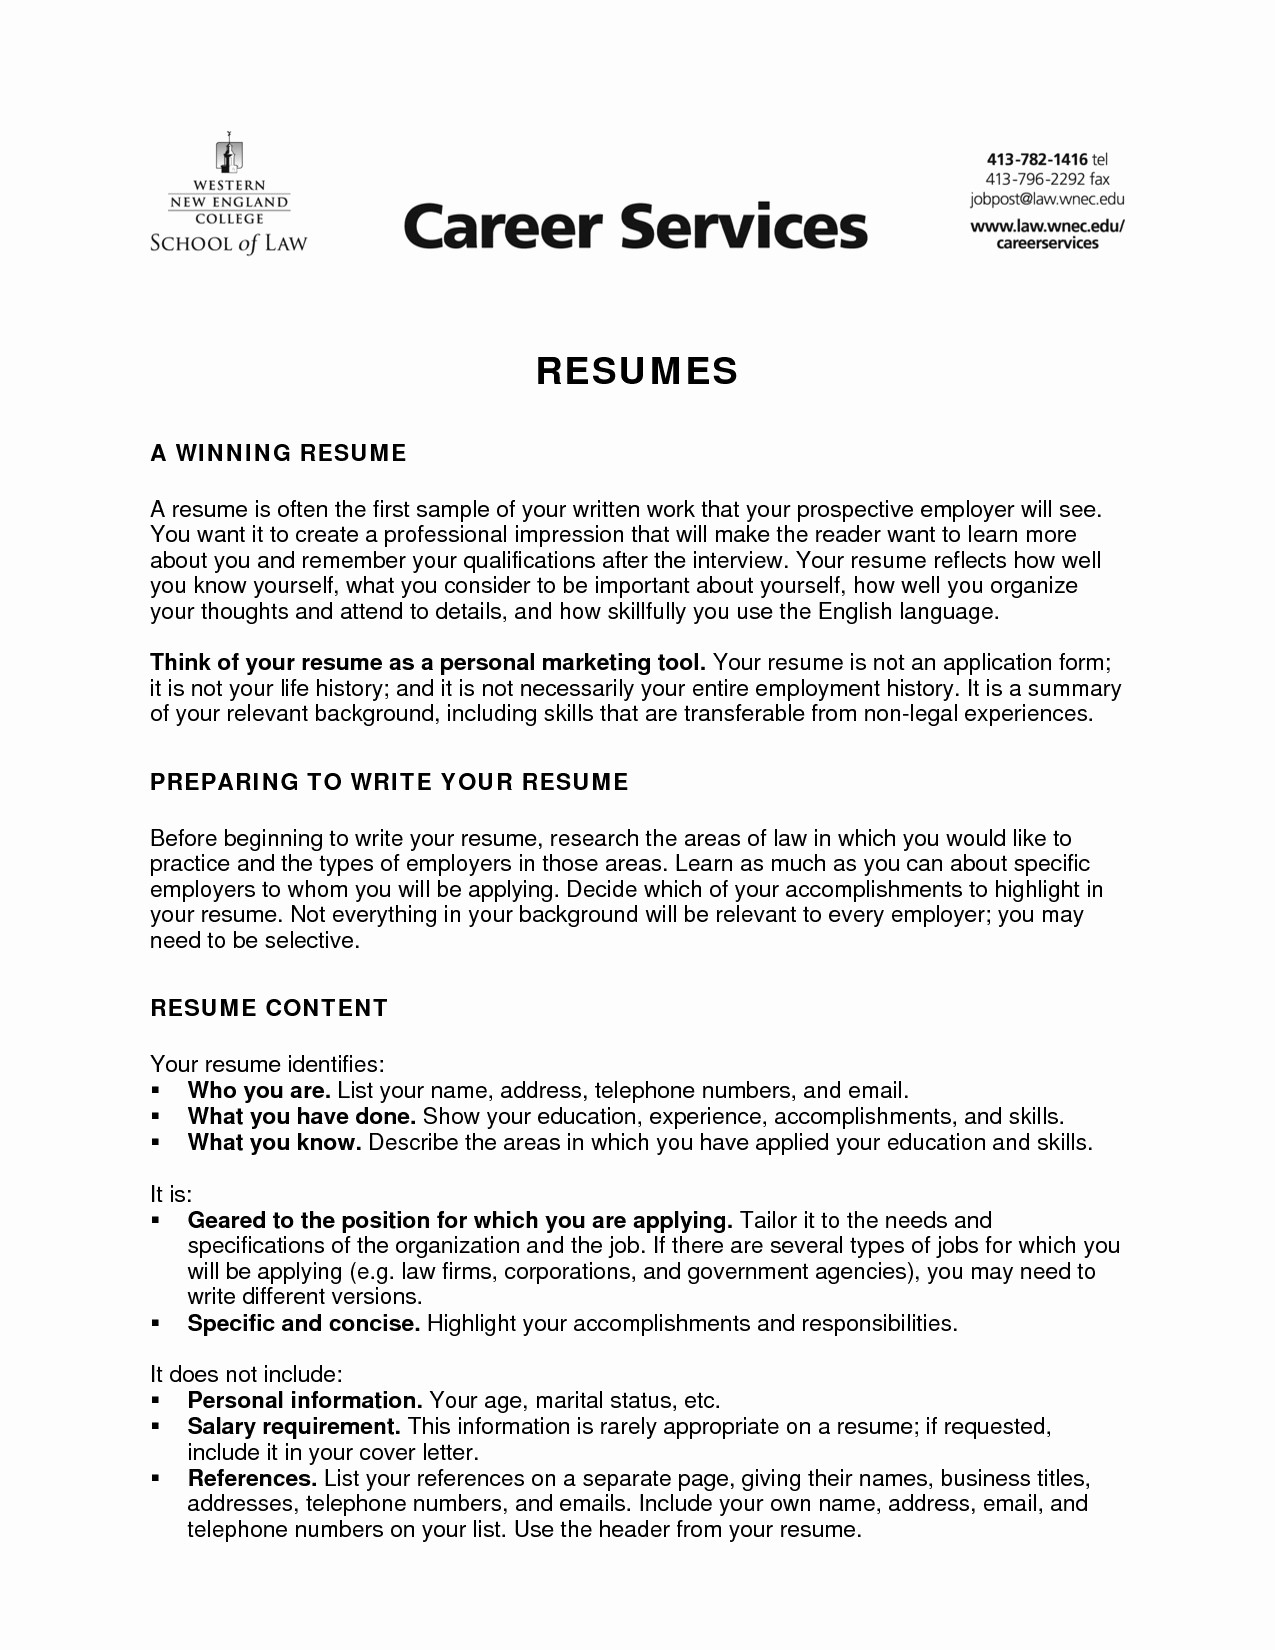 Cover Letter with Salary Requirements Template - How to Address Salary Requirements In Cover Letter